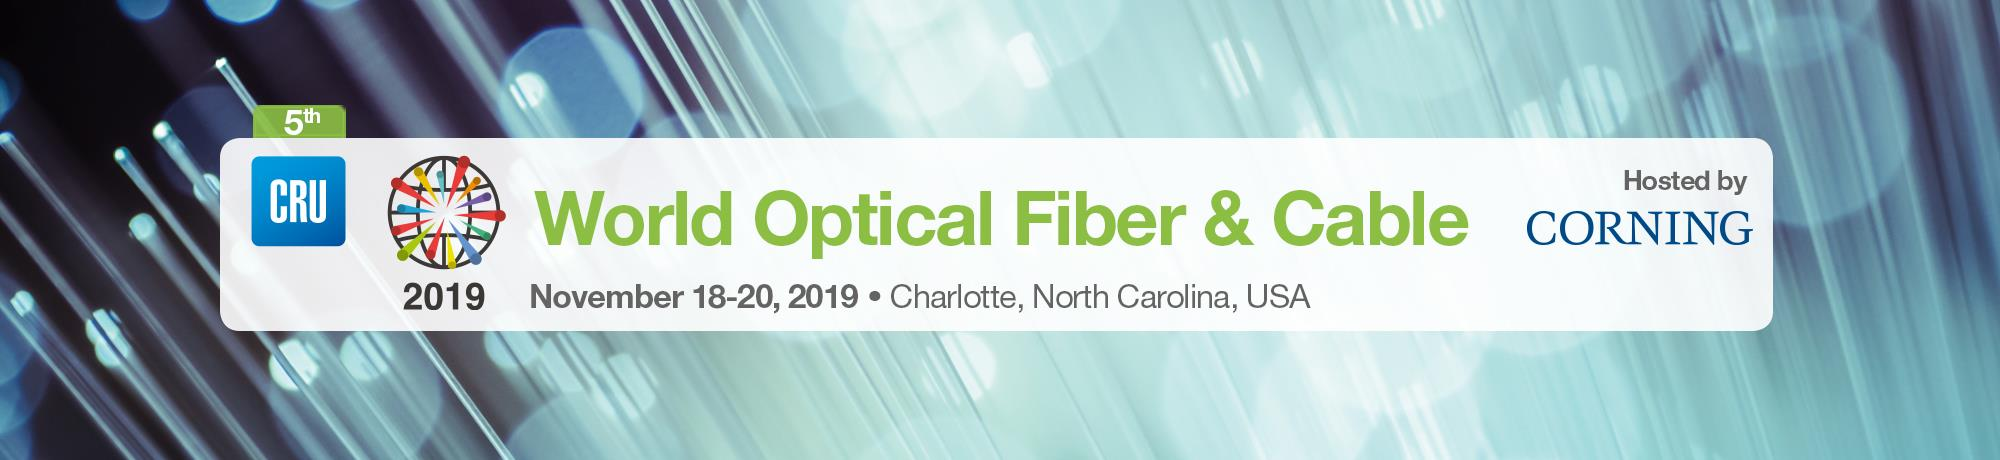 home | CRU World Optical Fiber & Cable Conference 2019